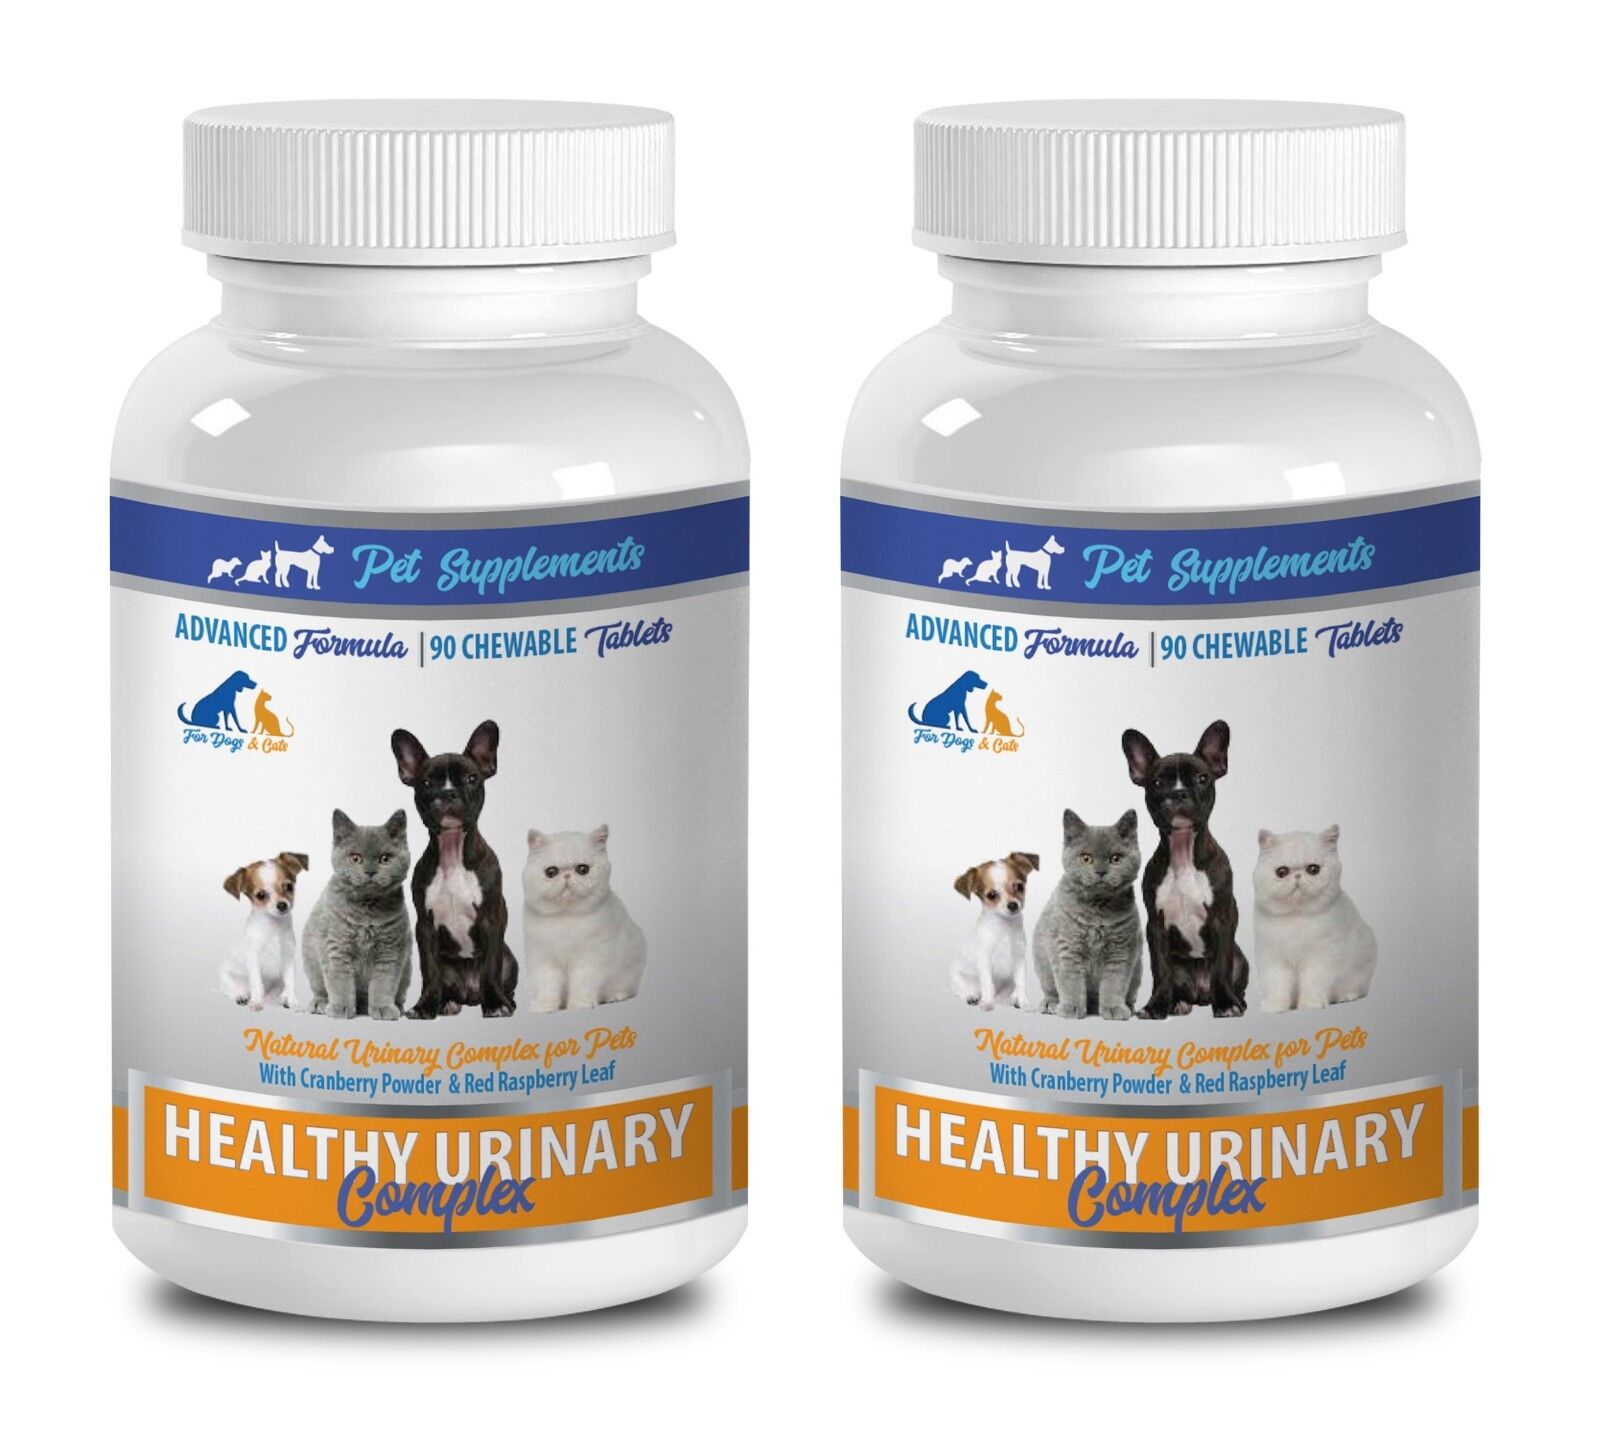 Urinary tract support cats - URINARY TRACT SUPPORT FOR PETS 2B- cat cranberry